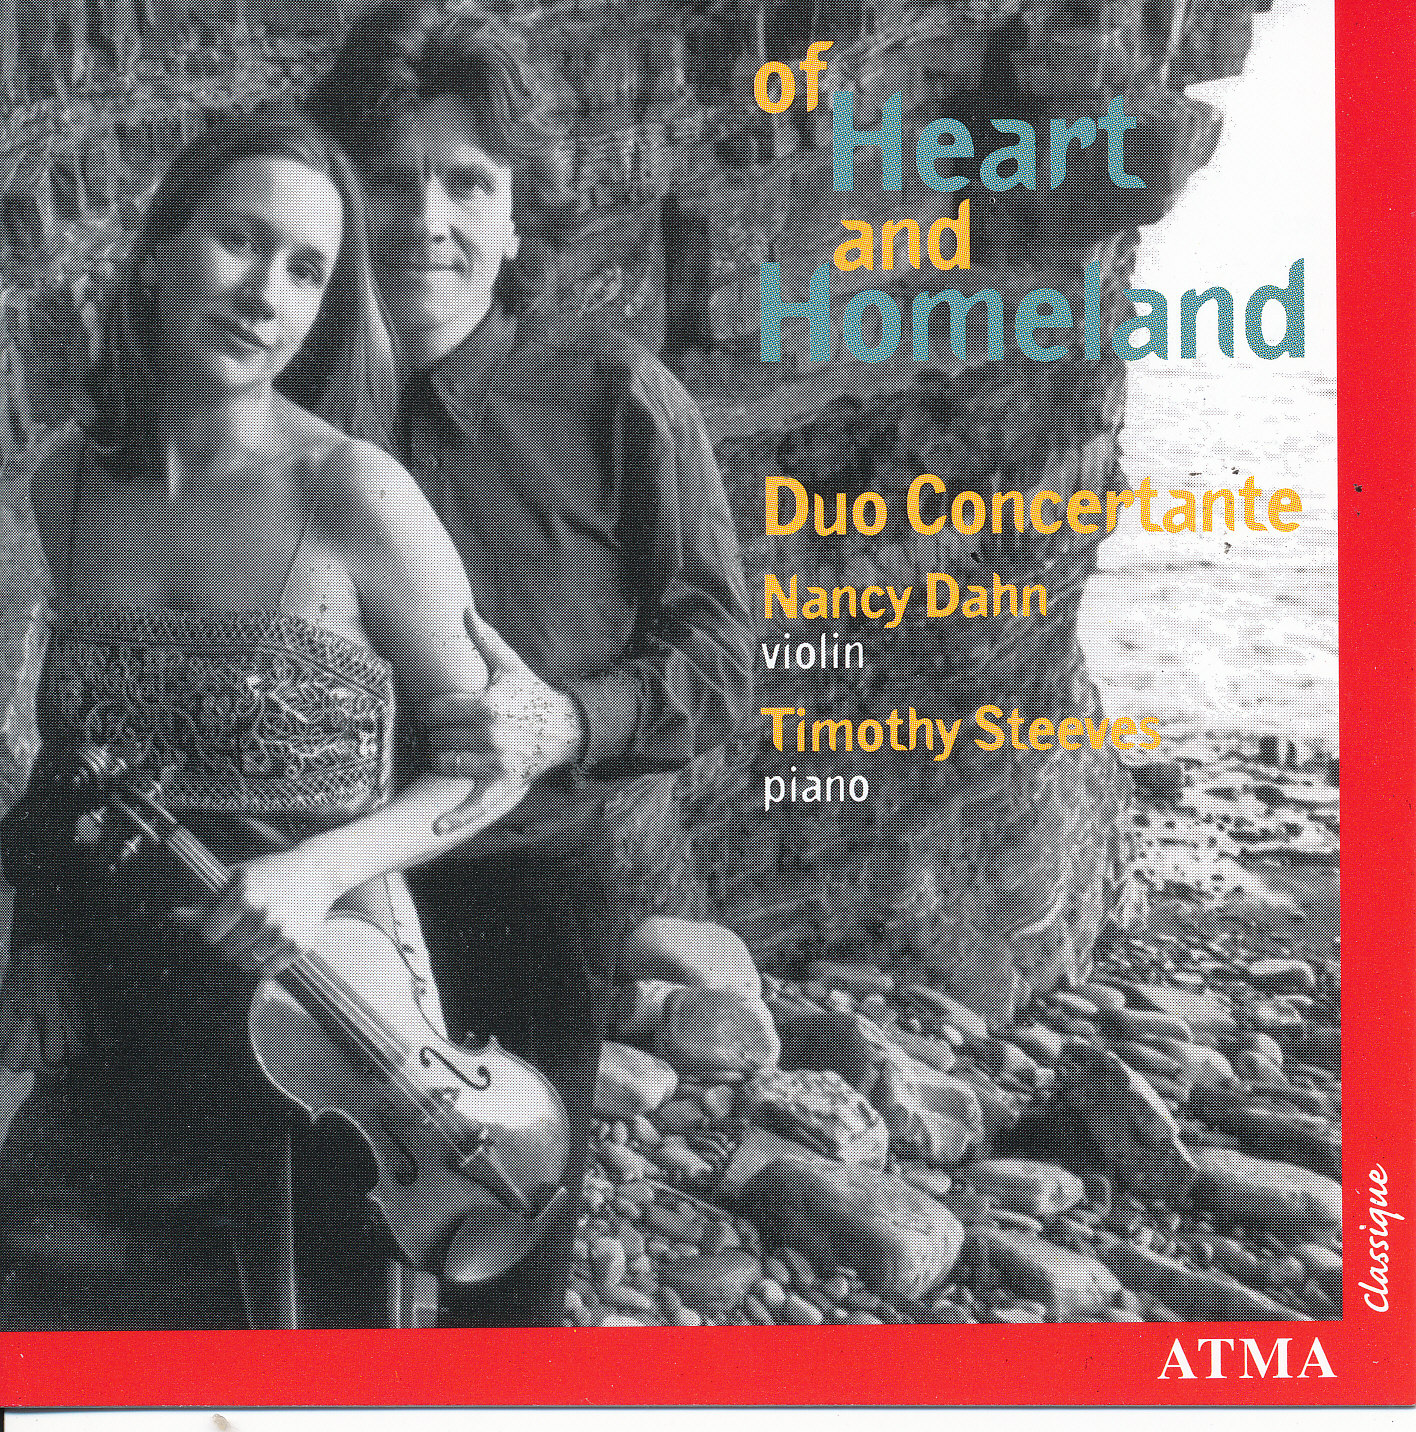 Duo Concertante - Of Heart and Homeland